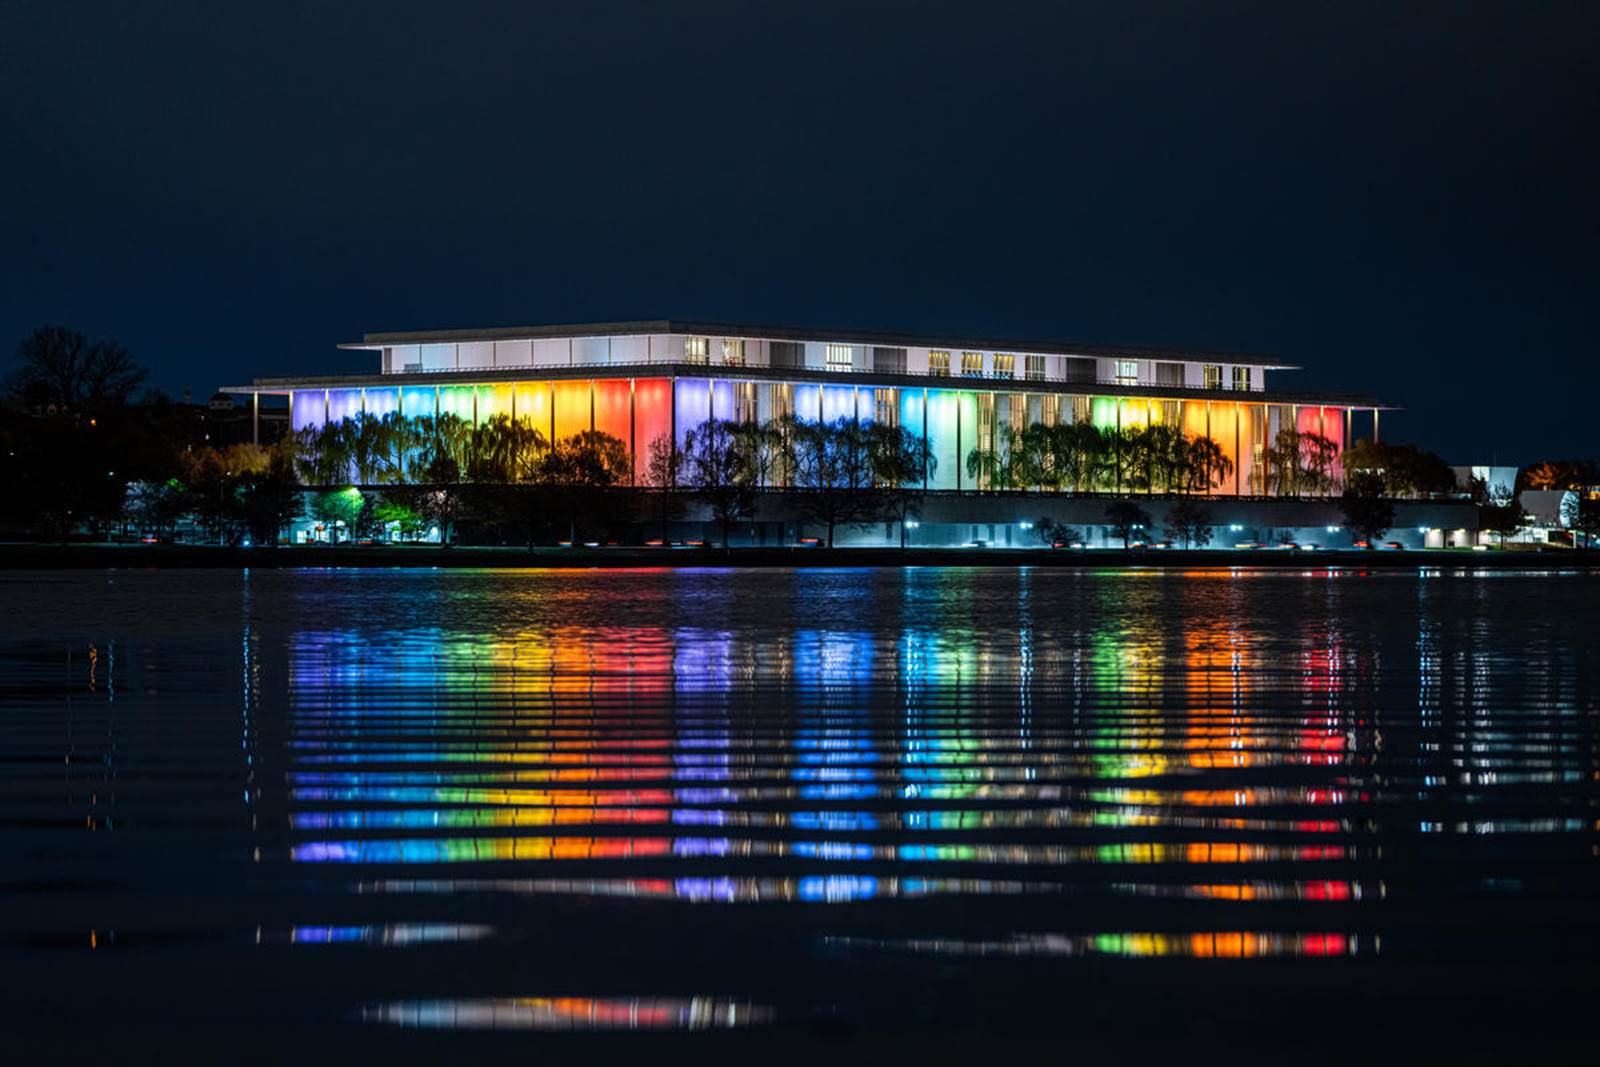 The John F. Kennedy Center for the Performing Arts lit up in the colors of the rainbow for the annual Honors celebration.